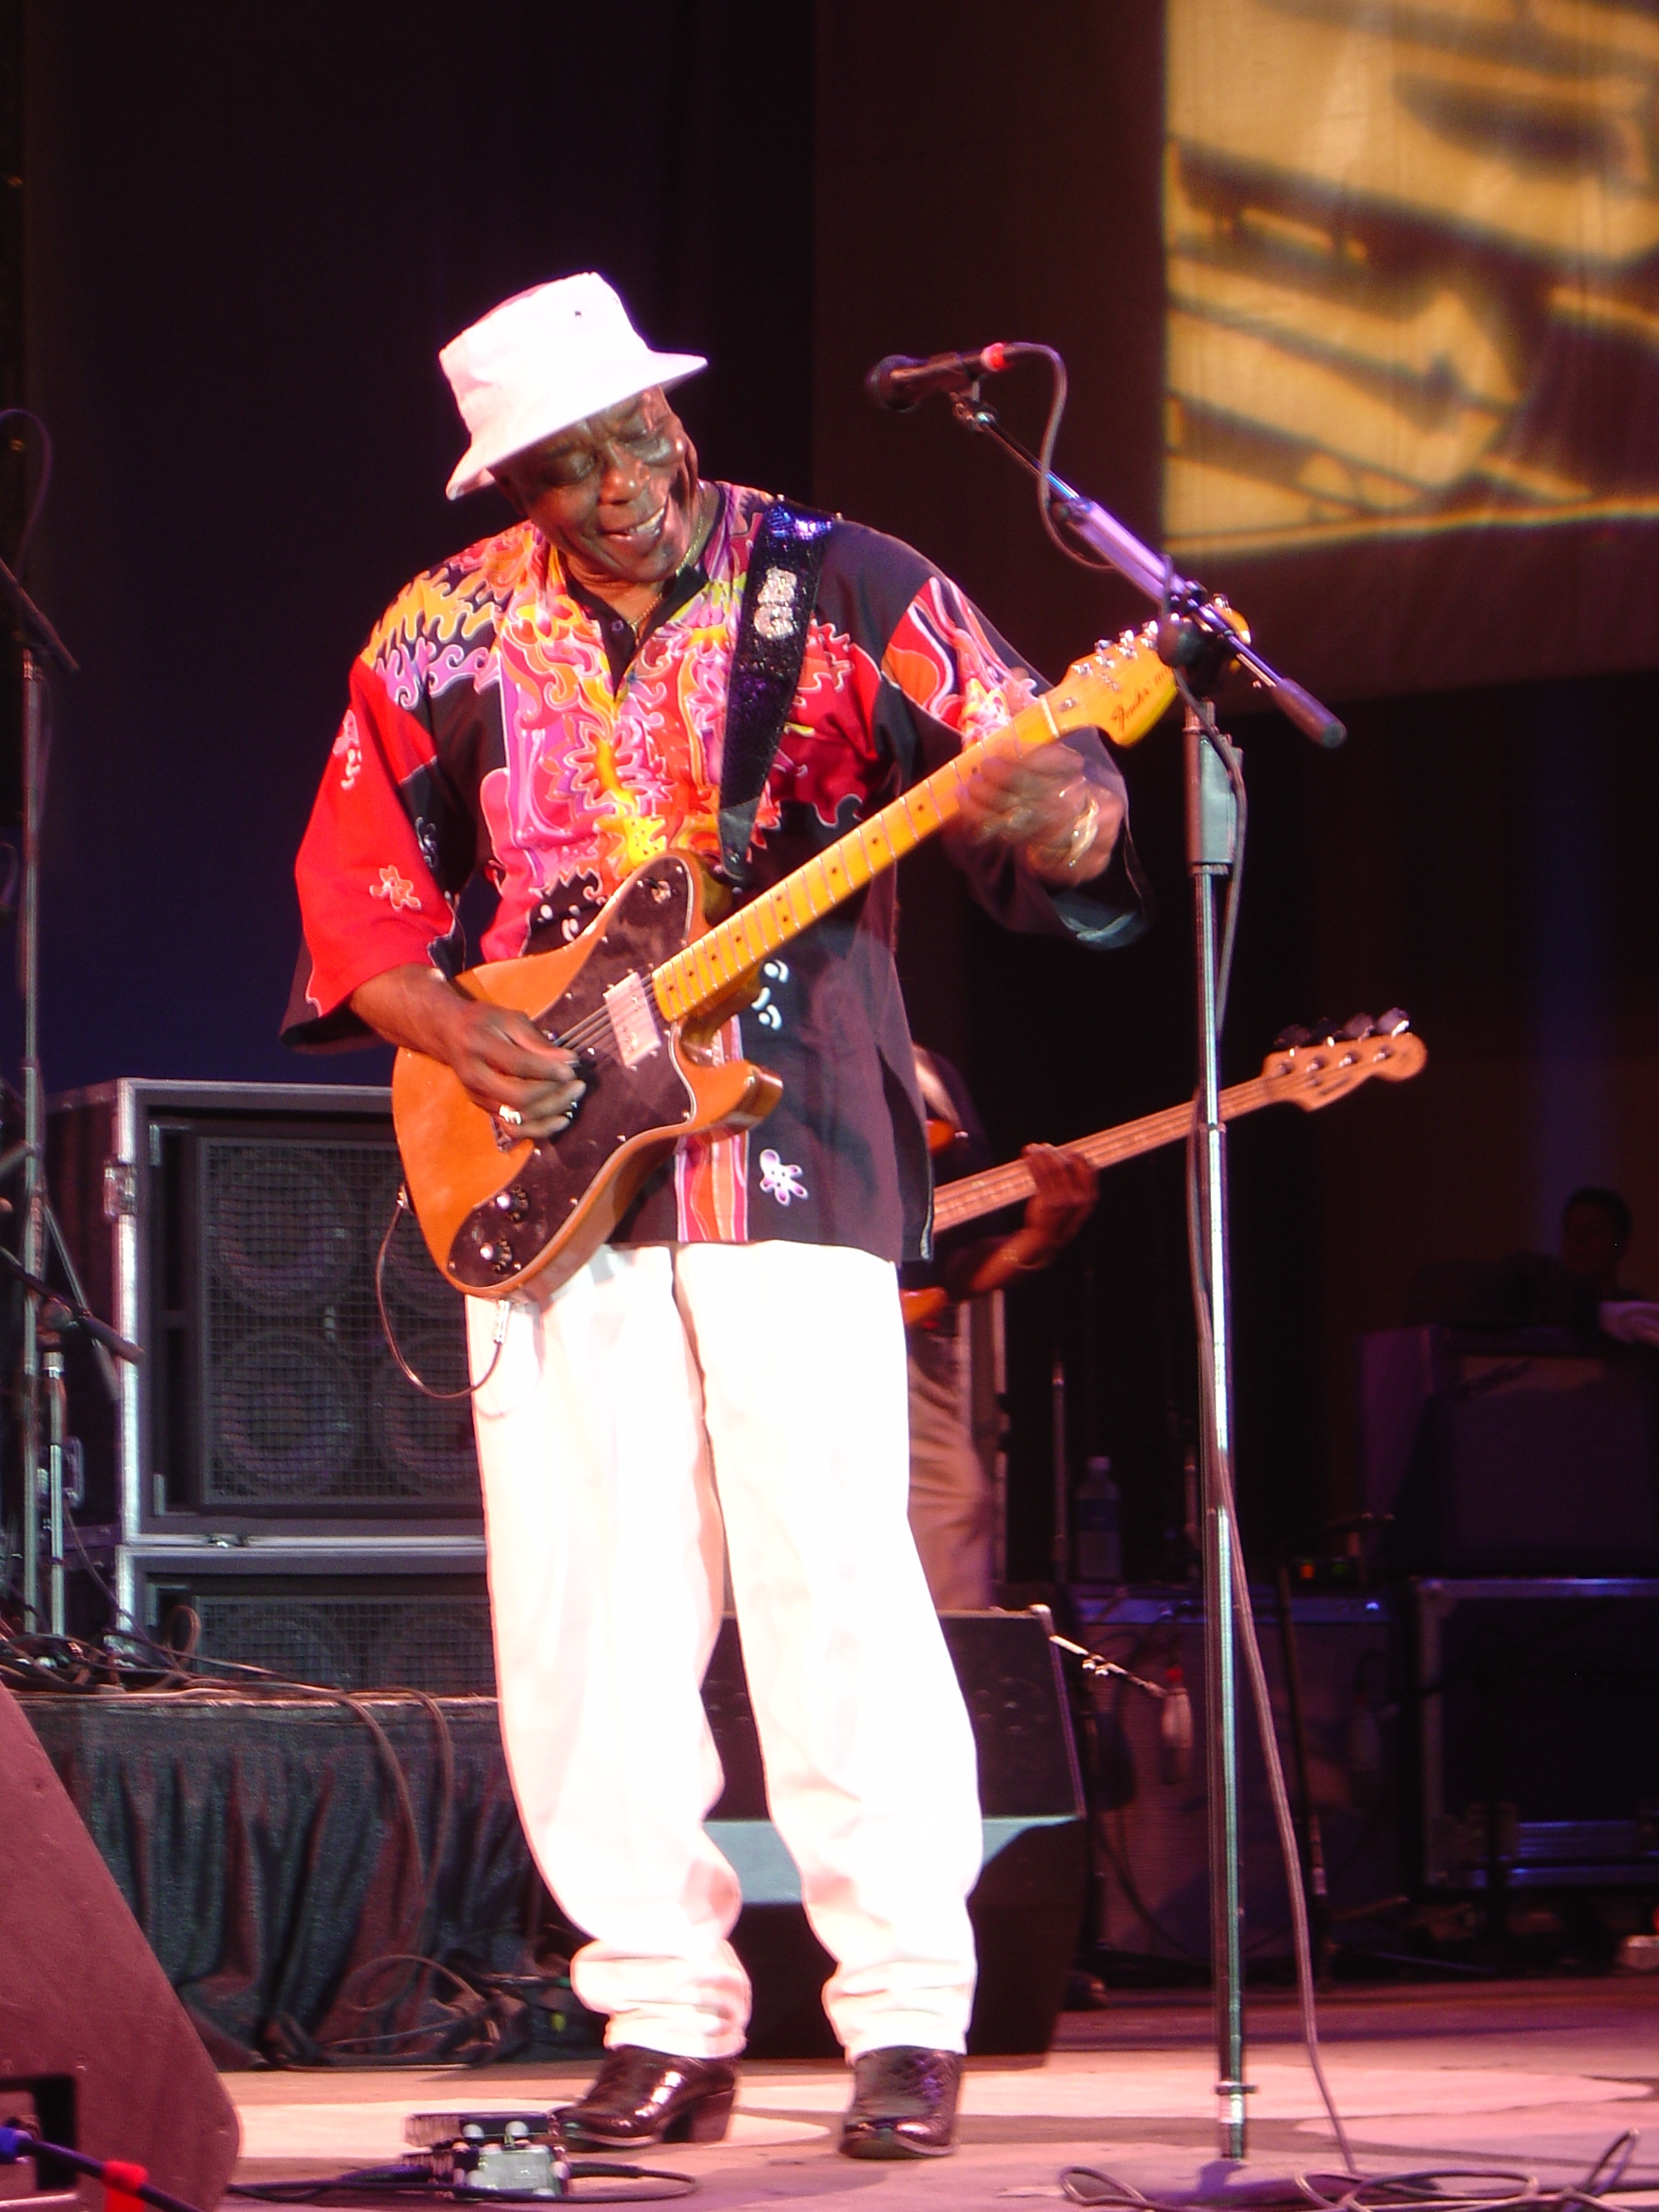 Buddy Guy with a great smile